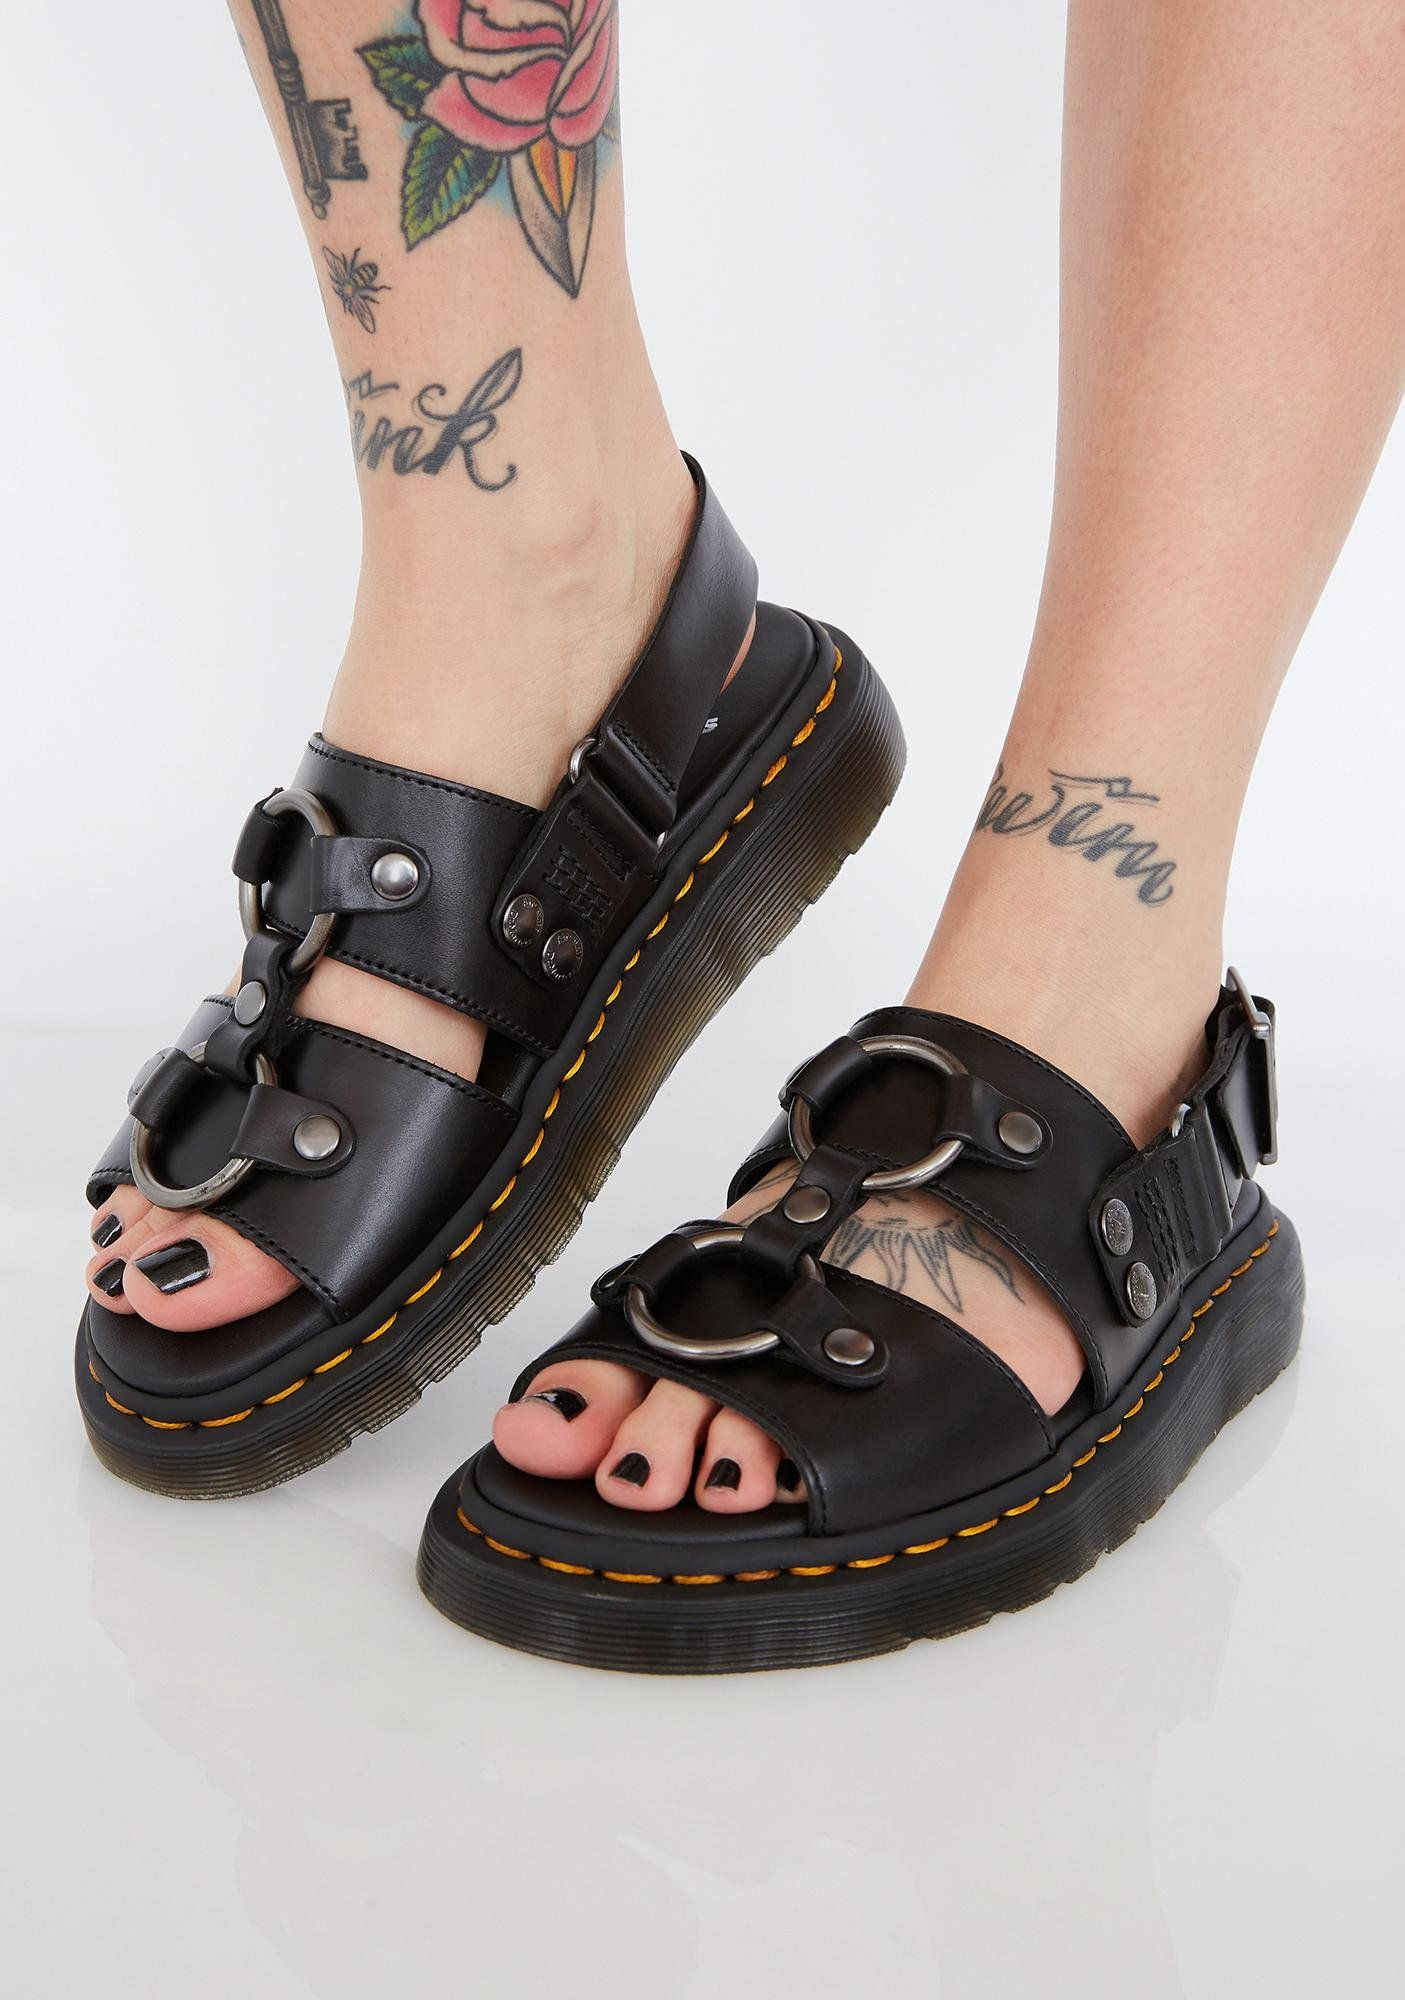 Find the Best Savings on Dr. Martens Women's Blaire Patent